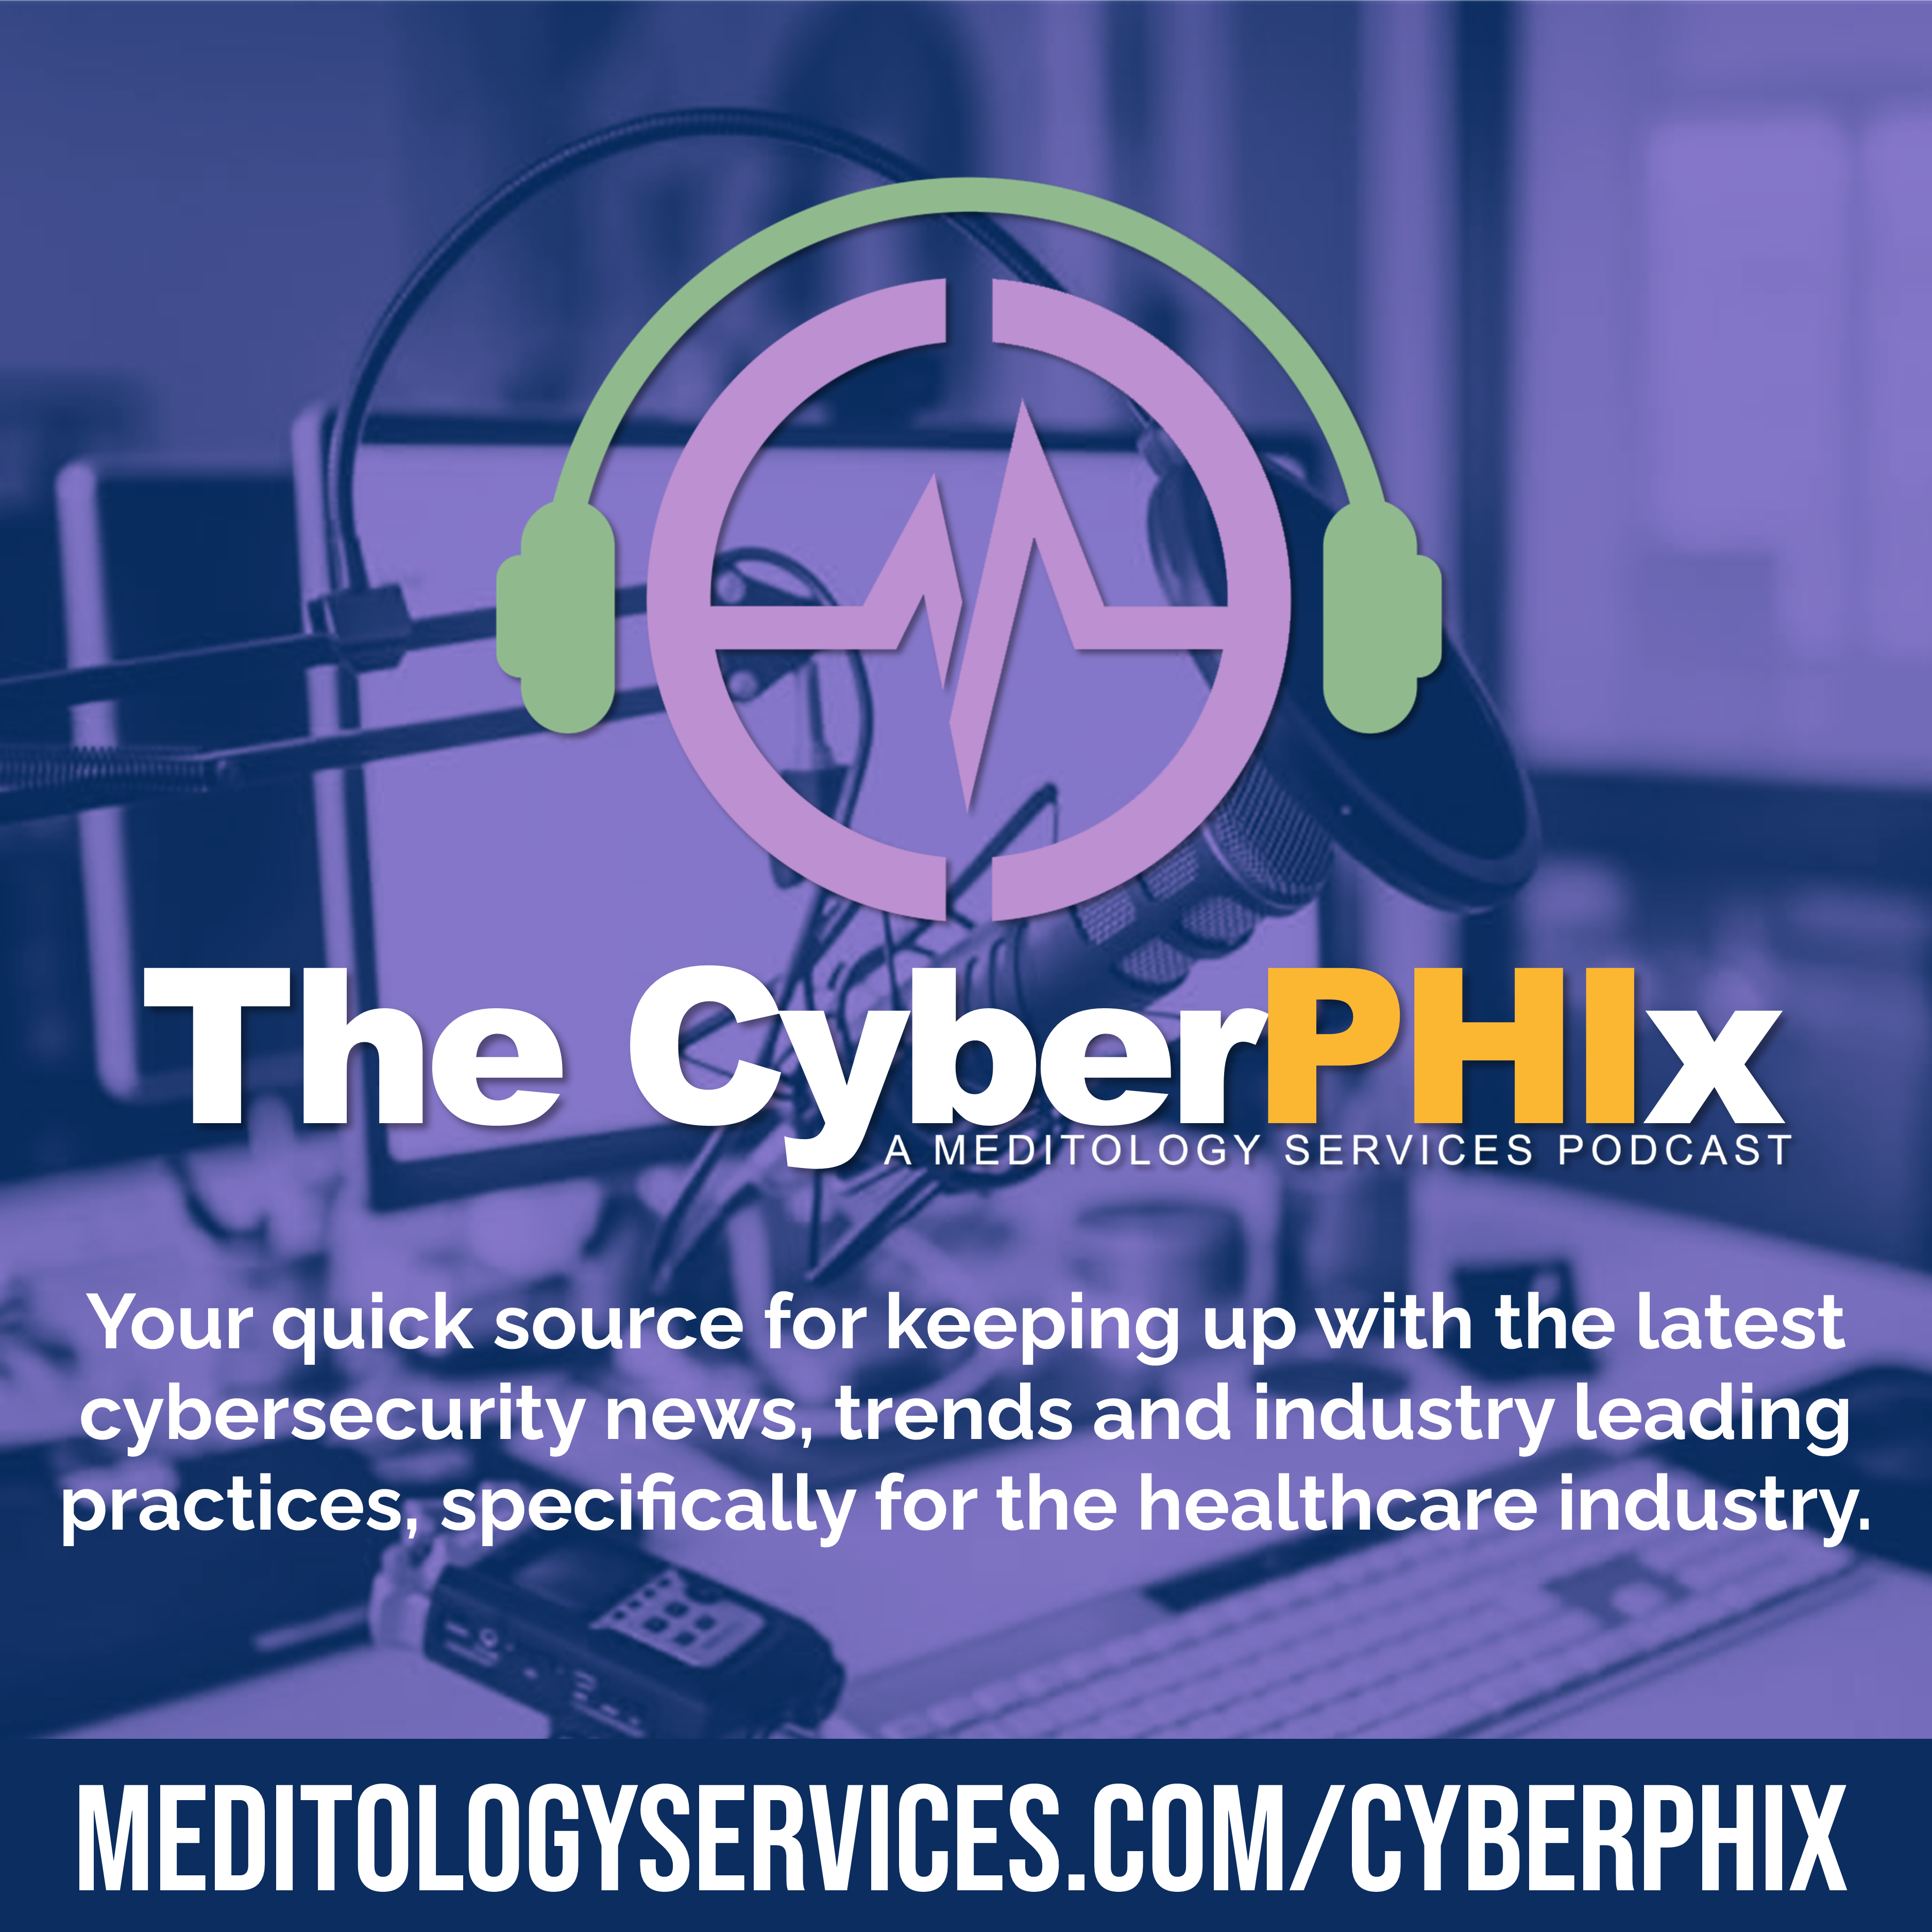 The CyberPHIx: Meditology Services Podcast show art